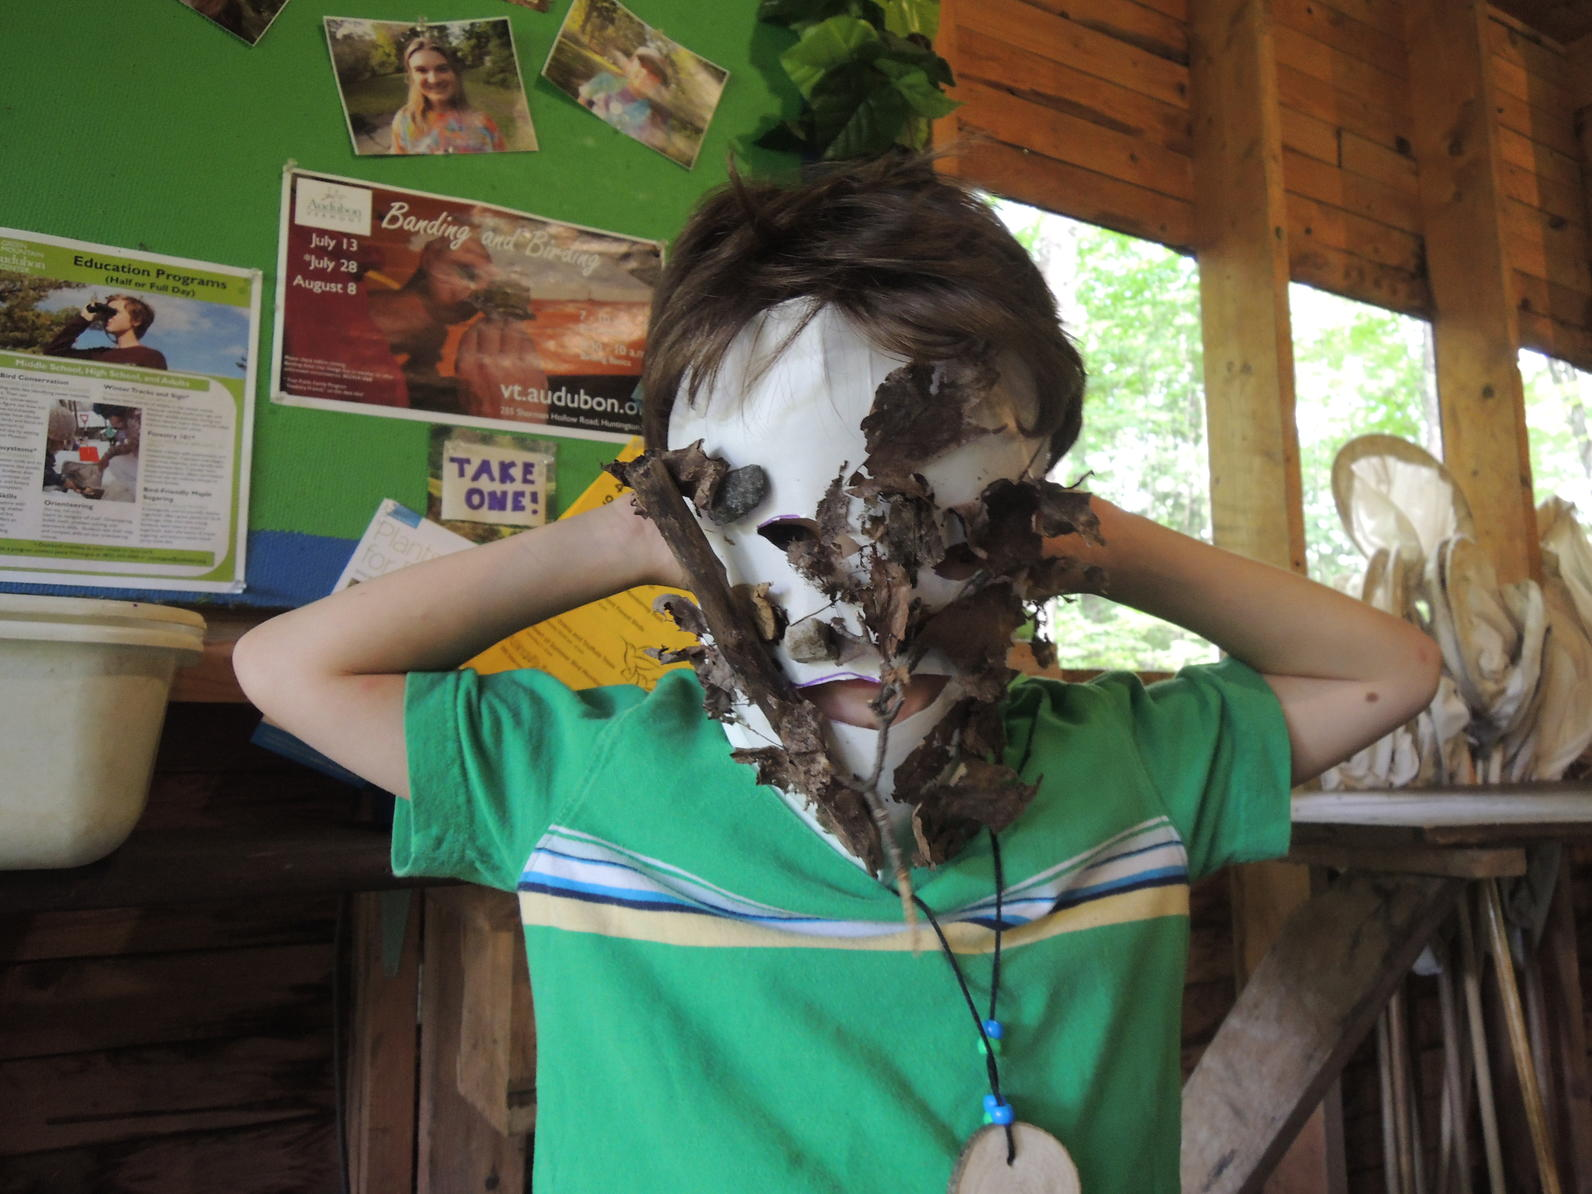 More camo masks